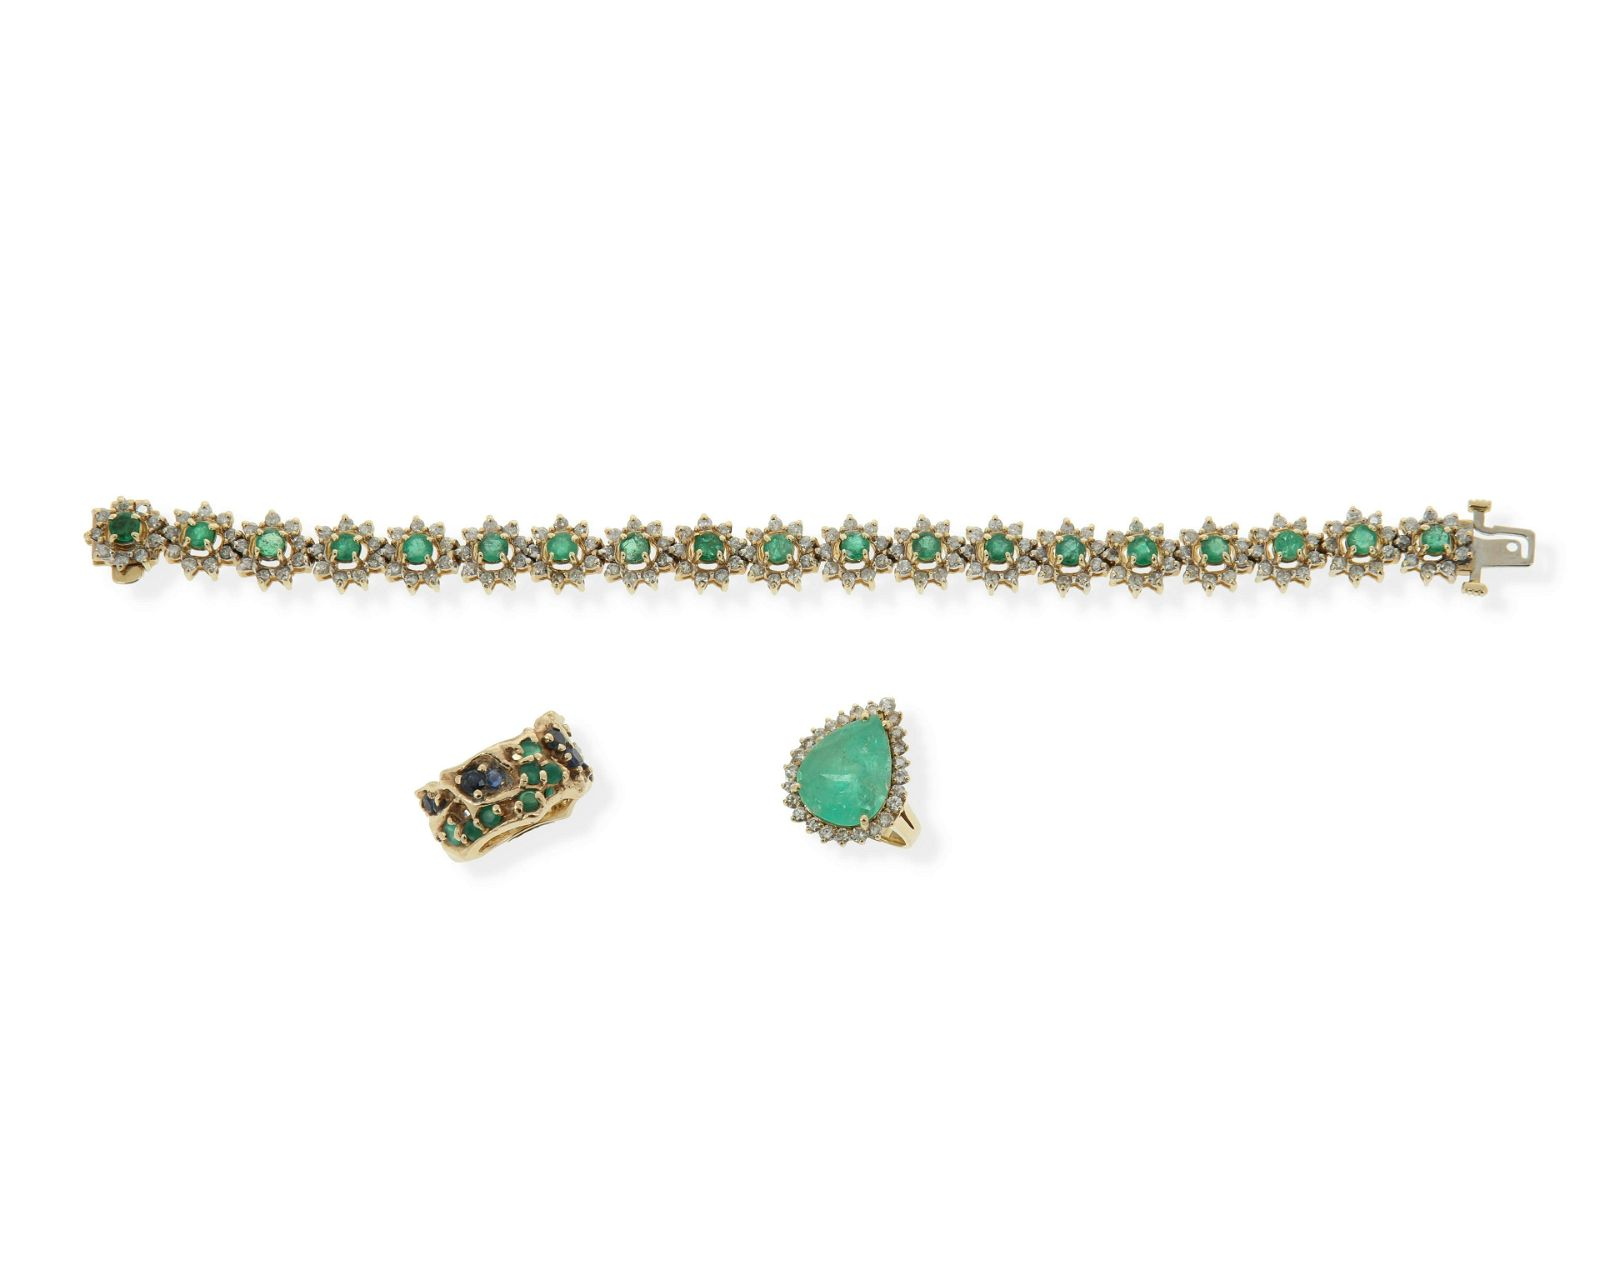 A group of emerald jewelry